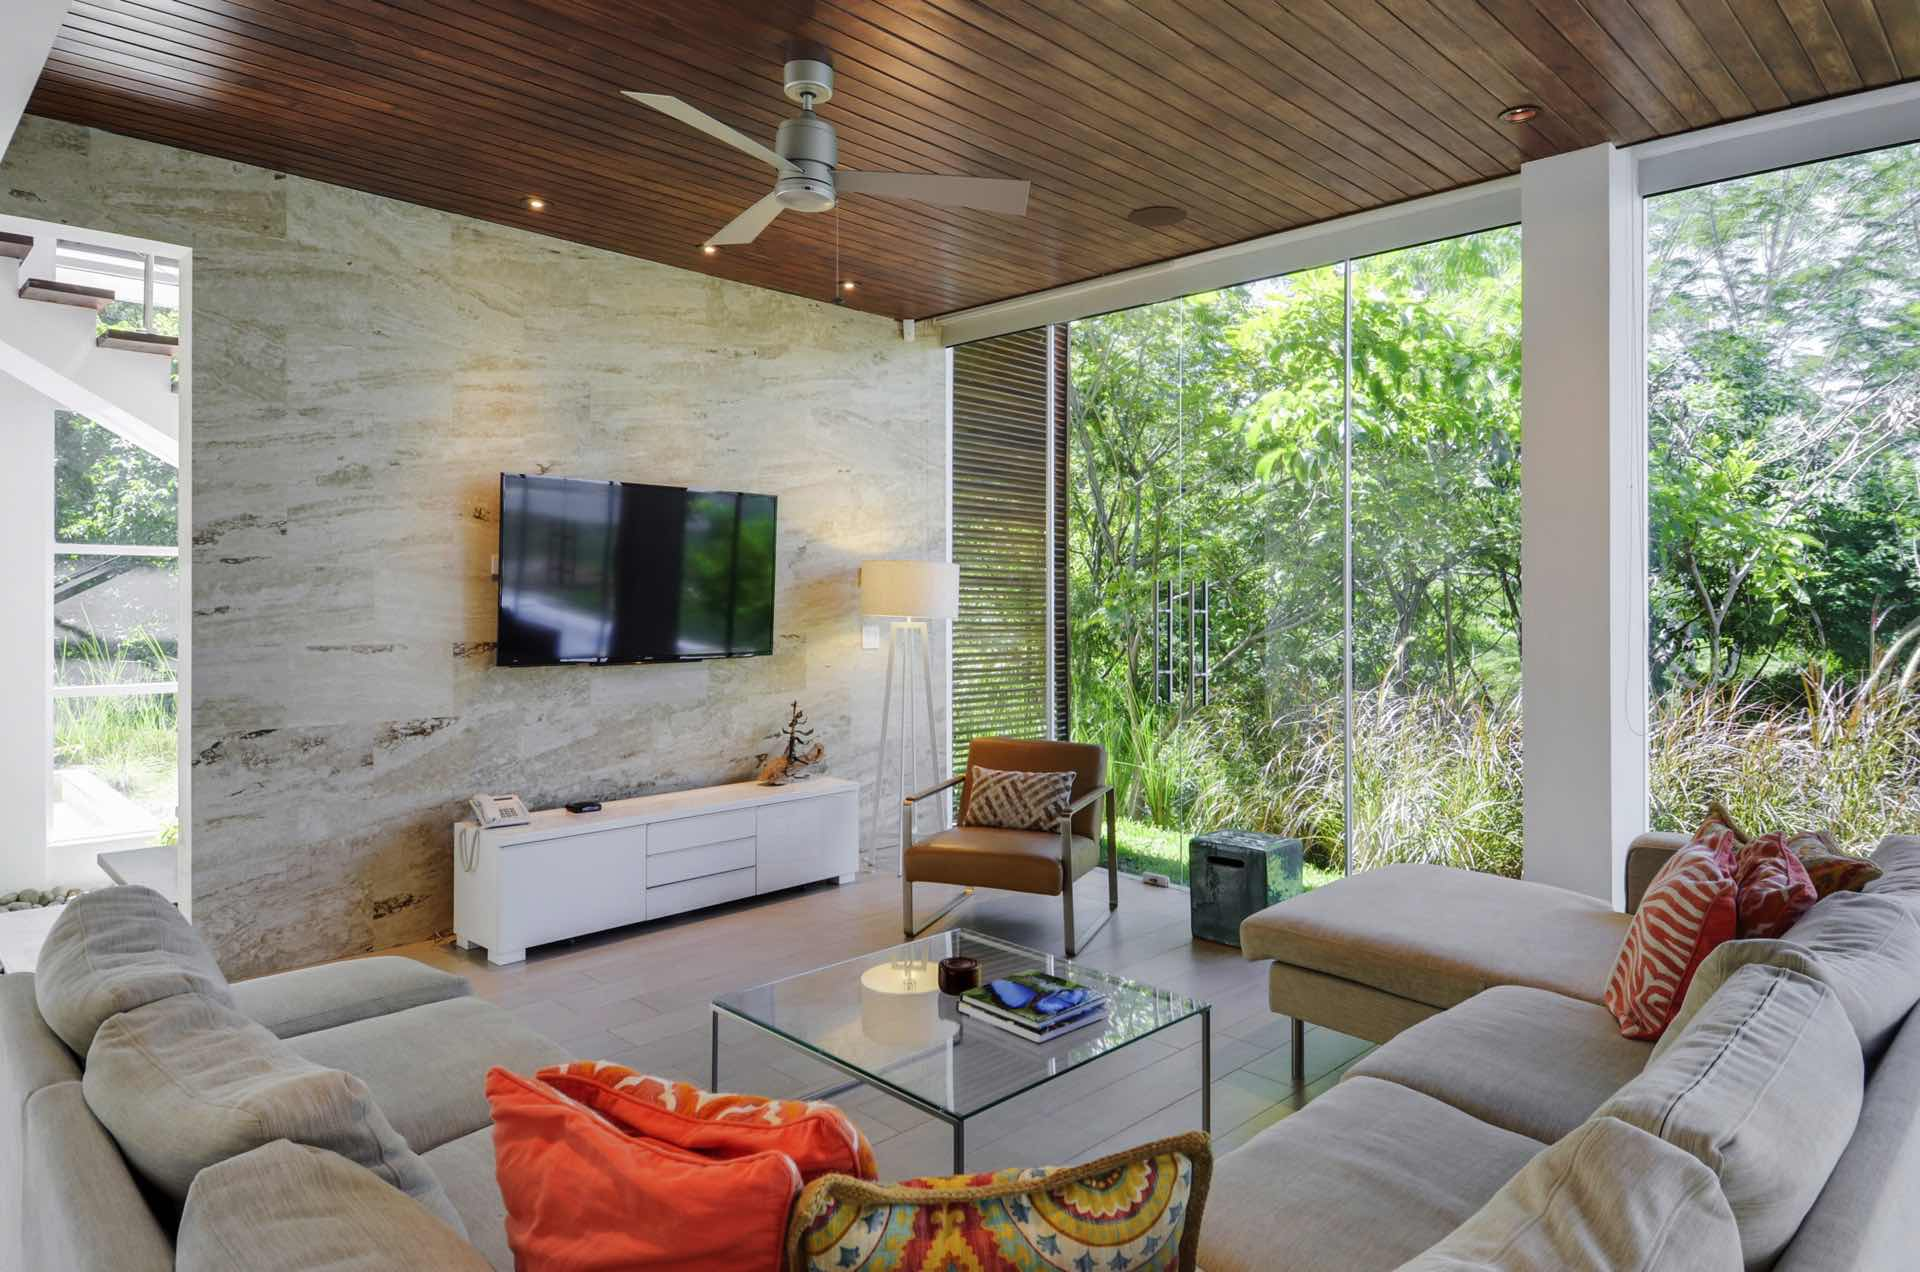 Spacious living area with lots of natural light